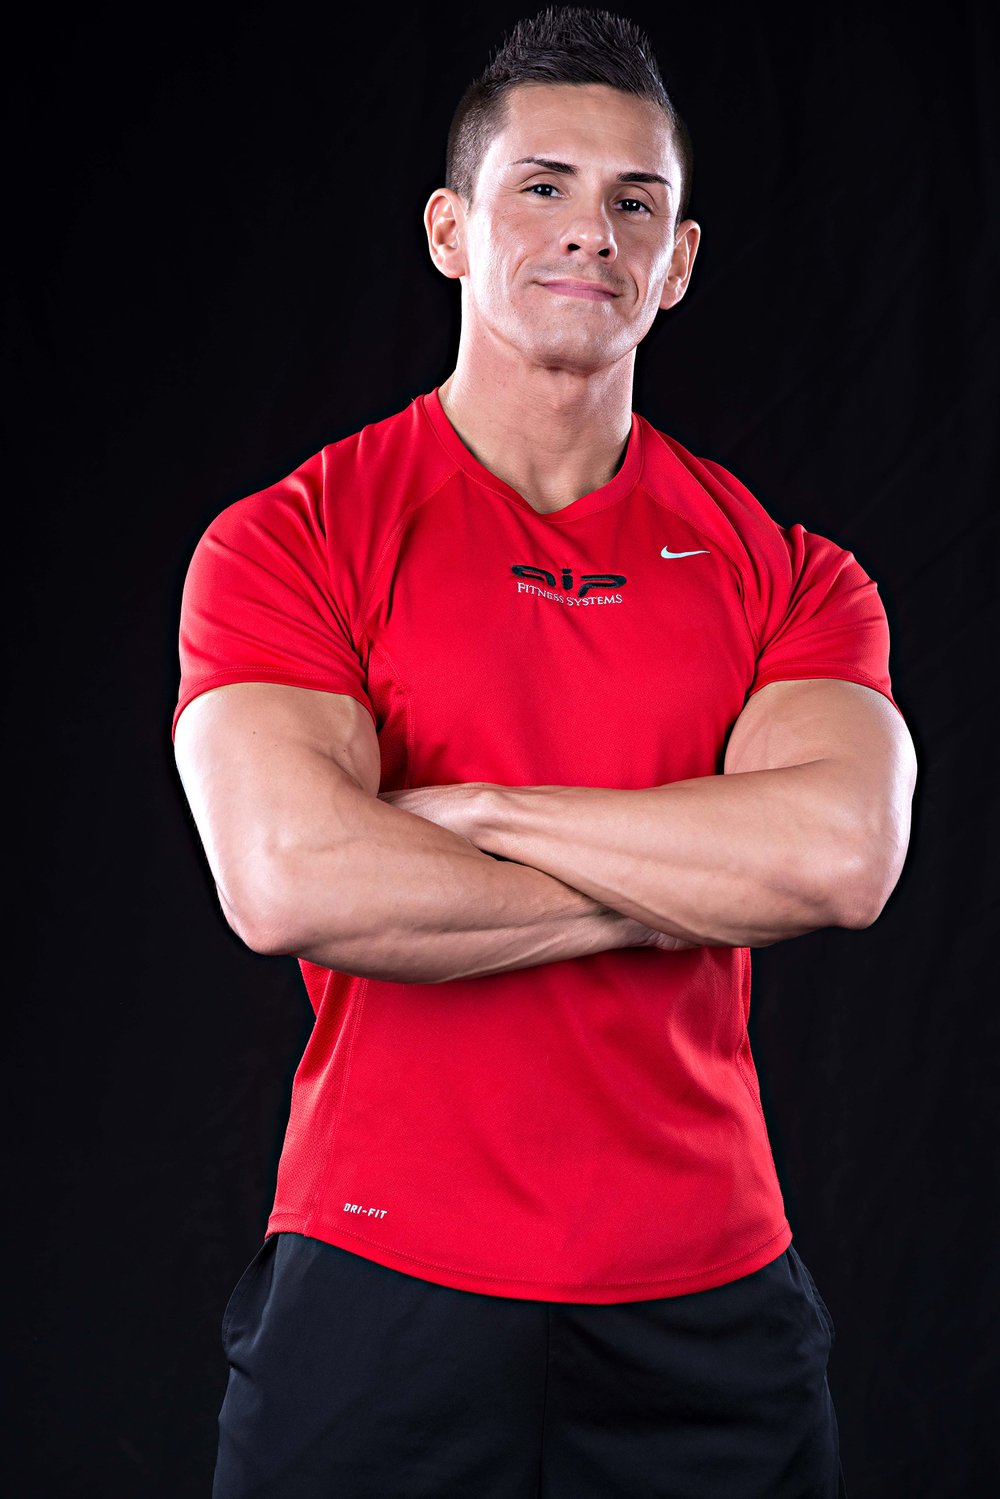 AIP Fitness Systems: KELLY